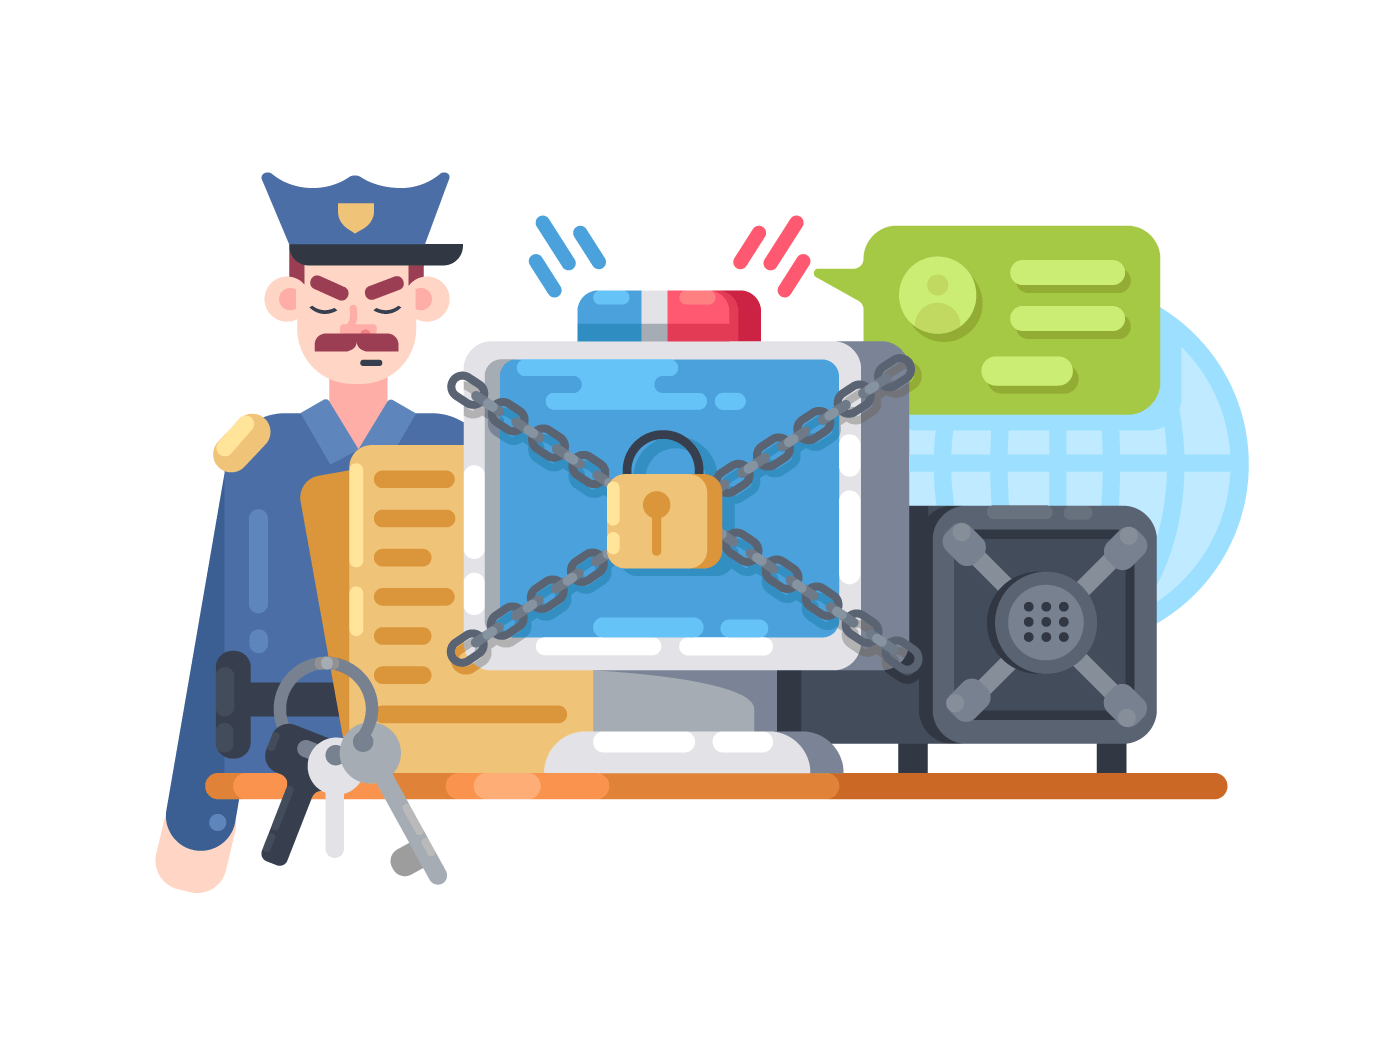 Digital protection and security illustration